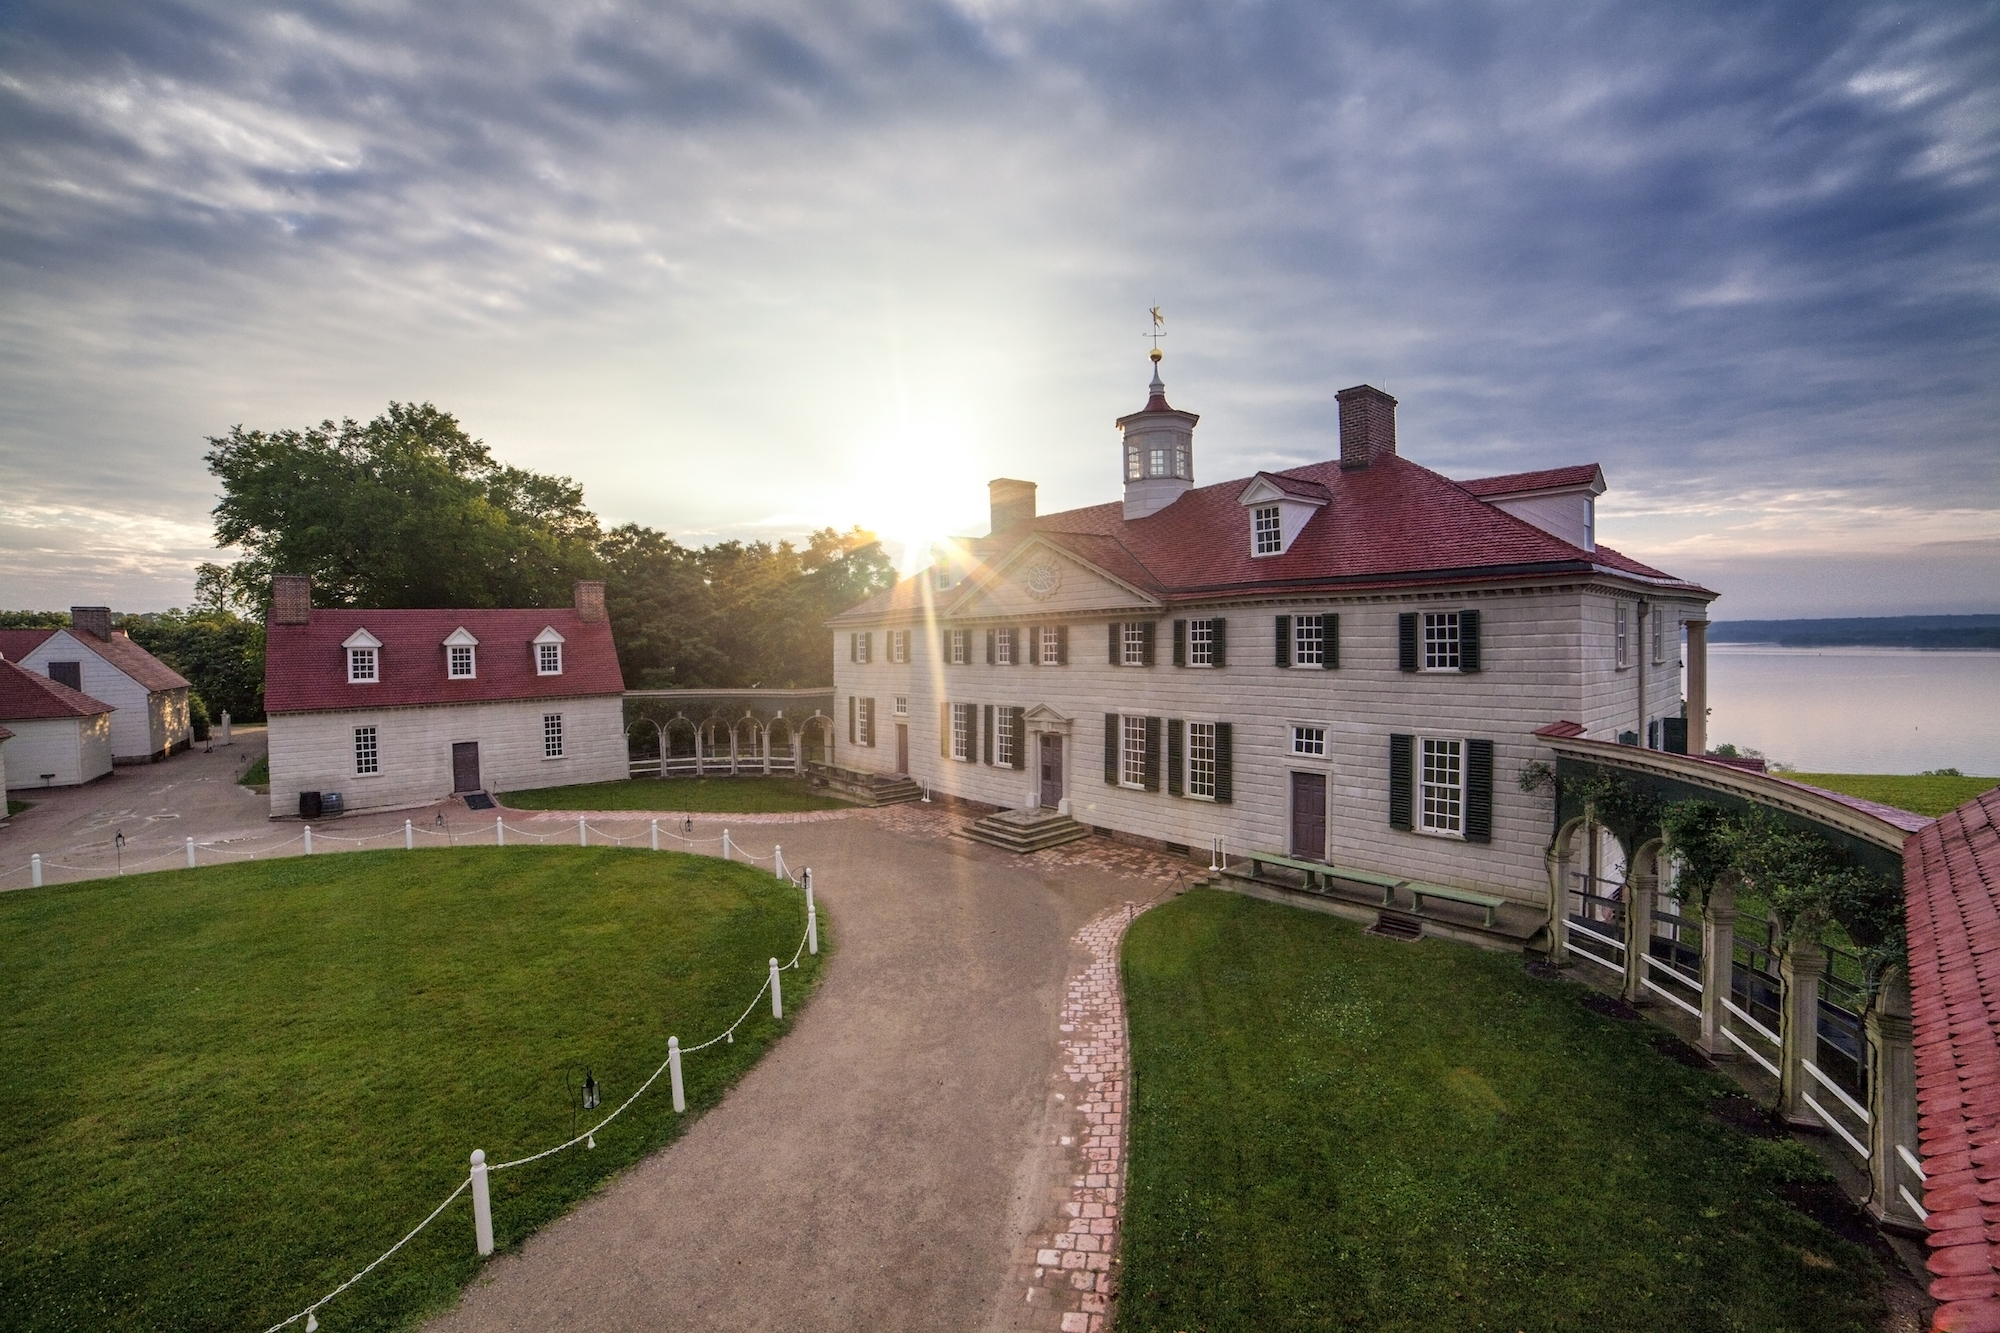 Image: Mt Vernon mansion at sunrise with the sun glinting off the roof and a green lawn stretching to the foreground